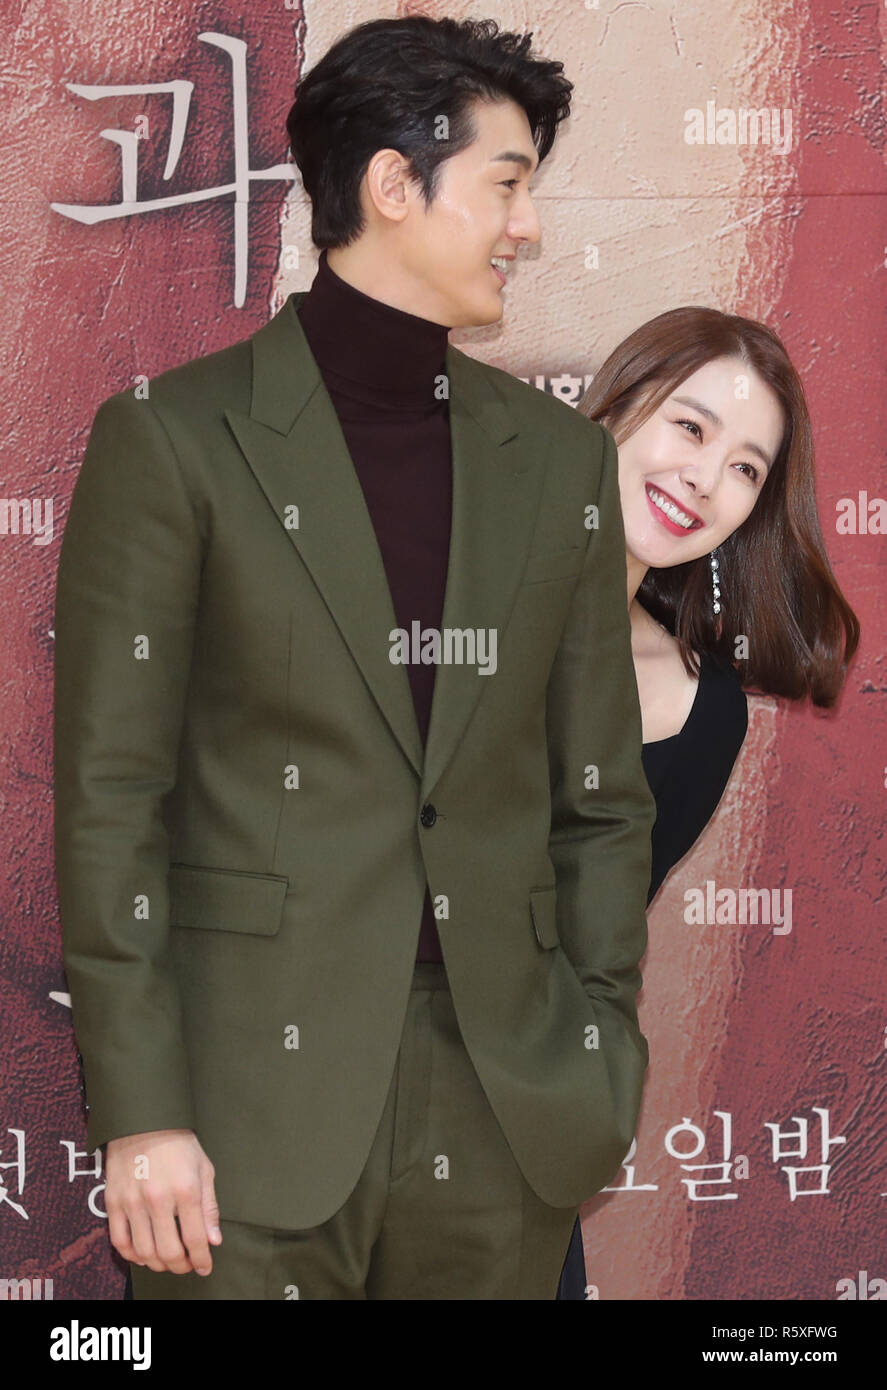 03rd Dec 2018 S Korean Actor Lee Ki Woo And Actress So Yi